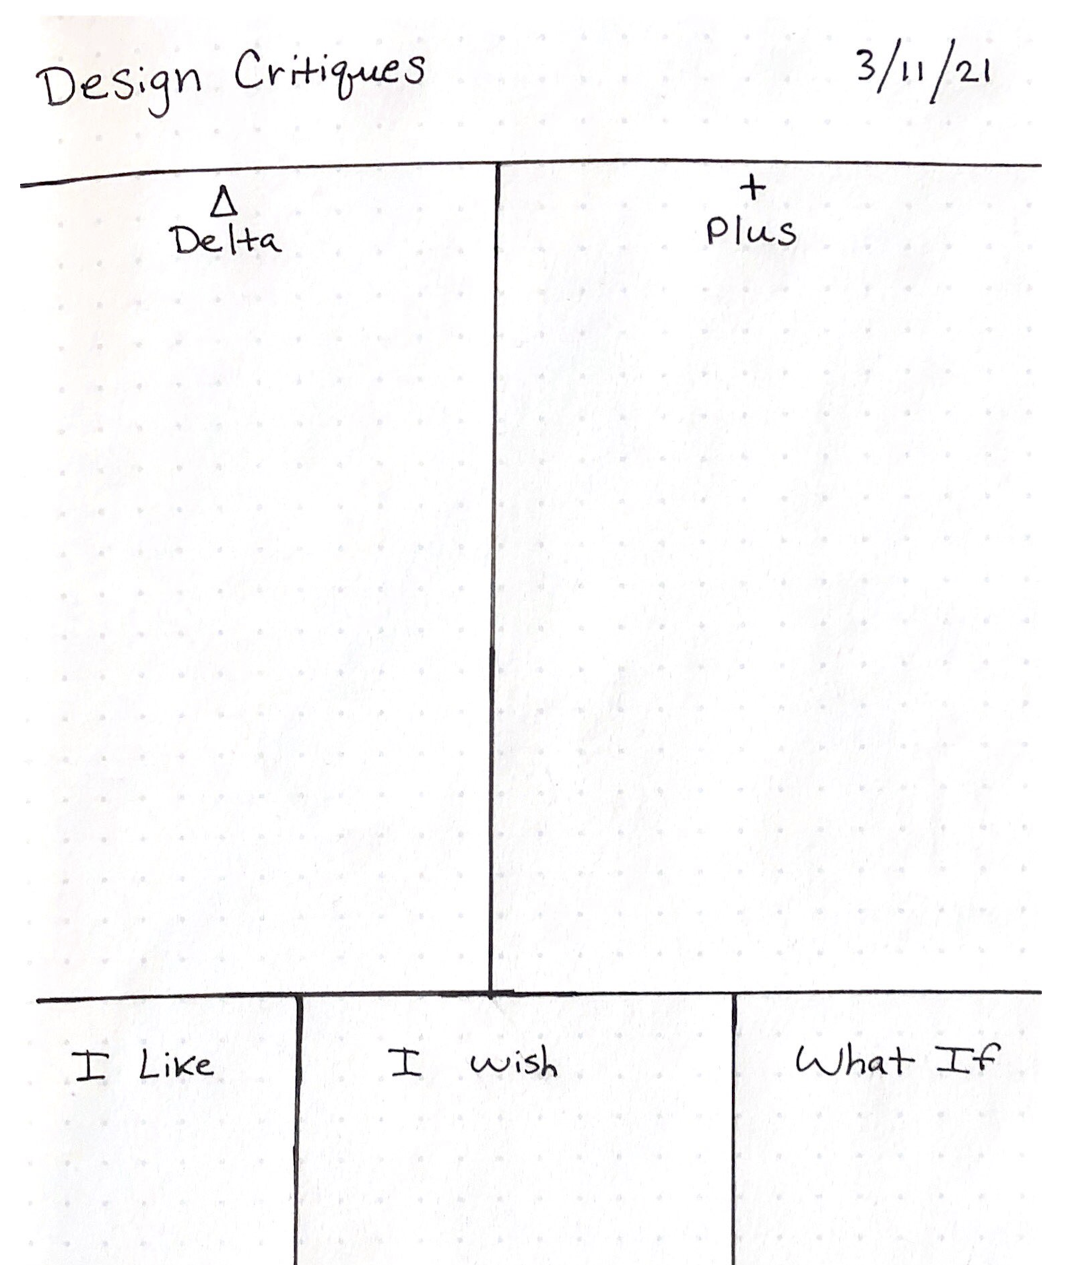 """This image depicts a template for a design critique. There are two grids—one for the """"Delta vs. Plus"""" critique model and another one for the """"I Like, I Wish, What If"""" model."""